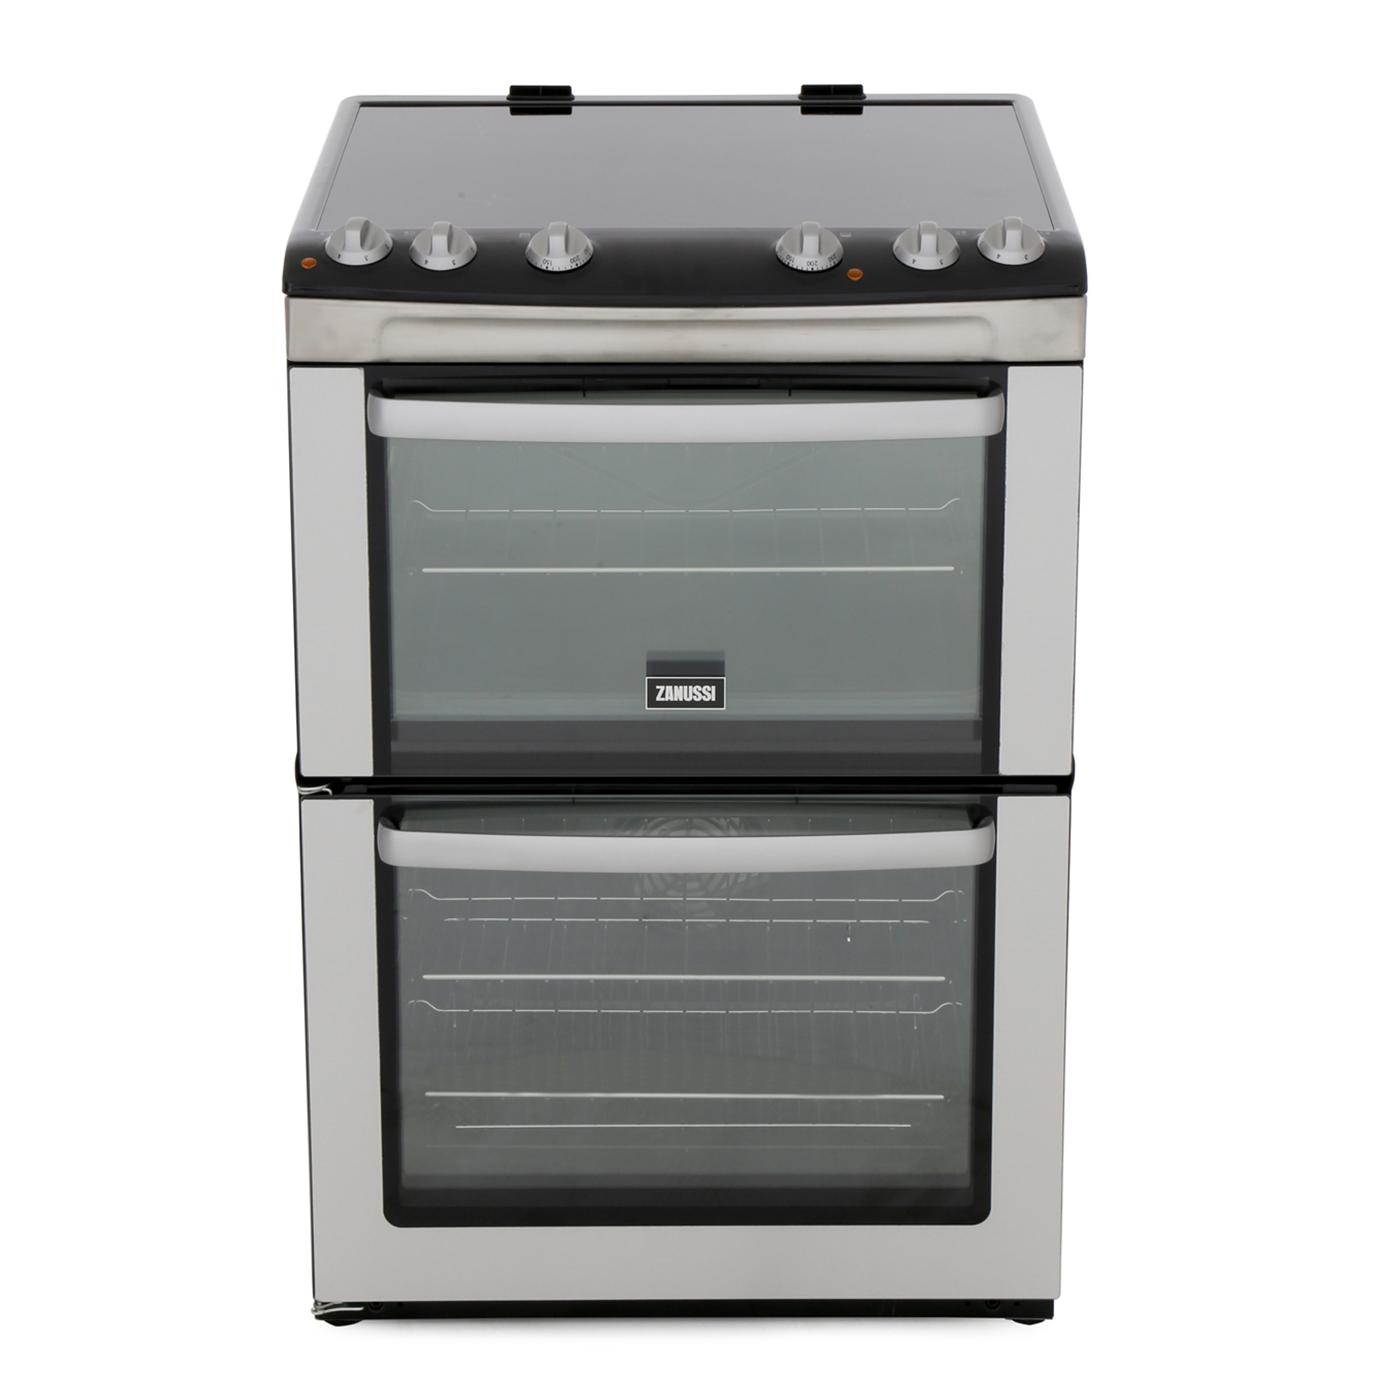 Zanussi ZCV668MX Ceramic Electric Cooker with Double Oven